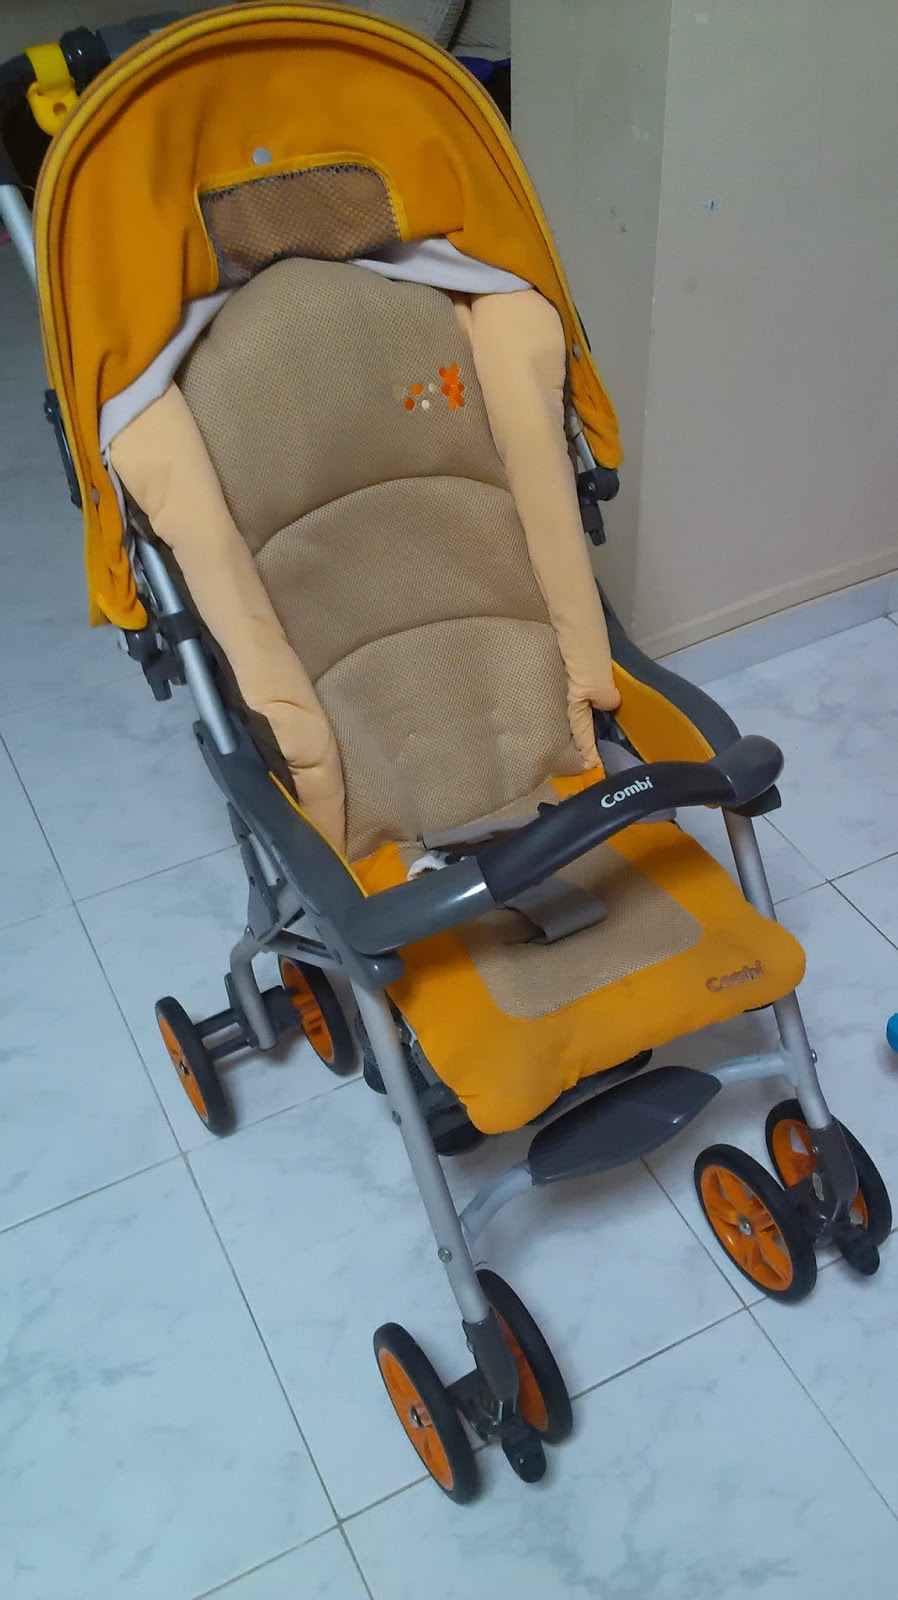 Things for Sell: WTS: Combi Stroller Tm359 (Orange)